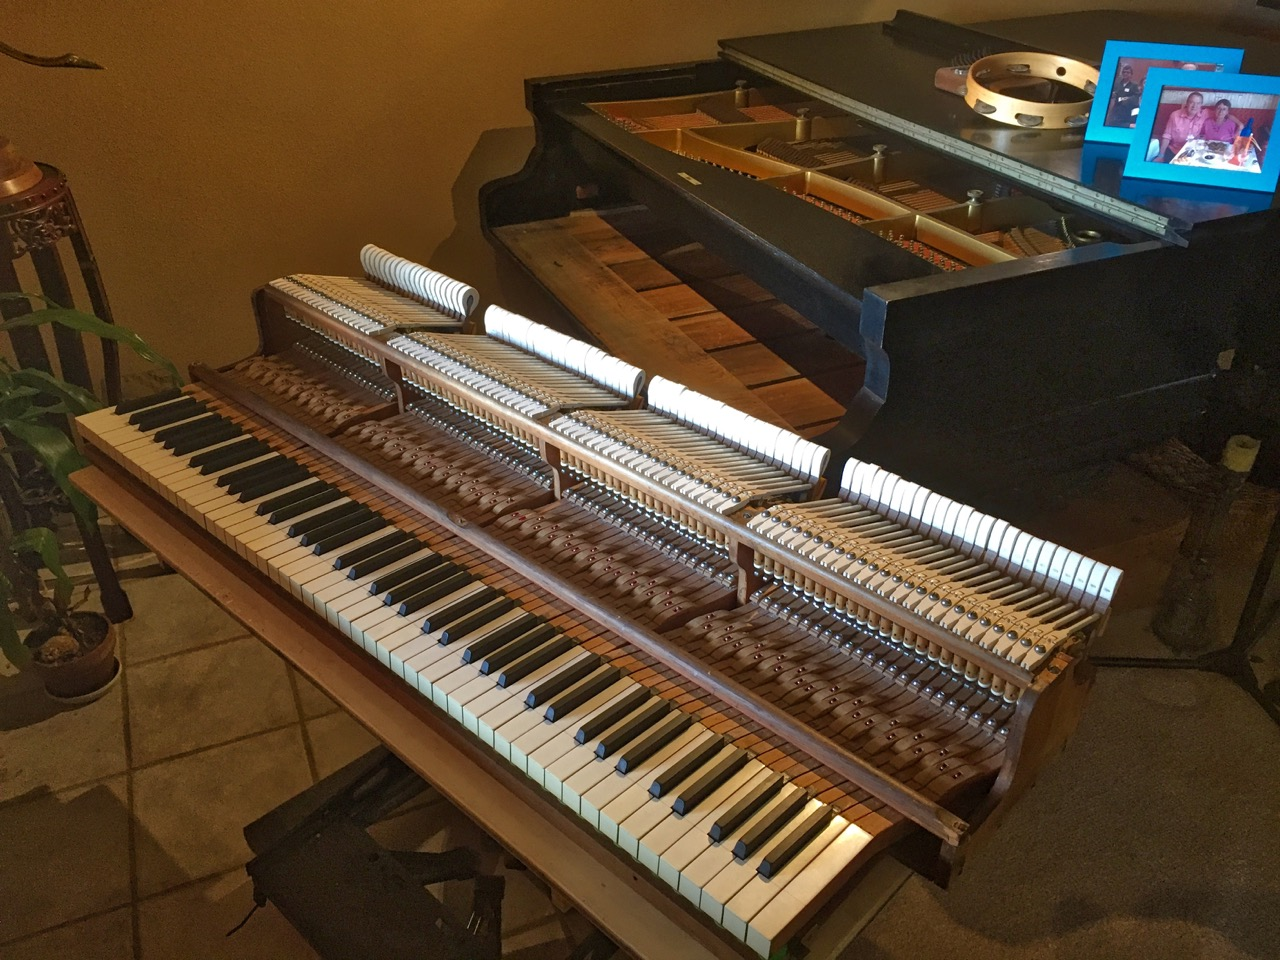 photo of the Action ready to reinstall in the piano